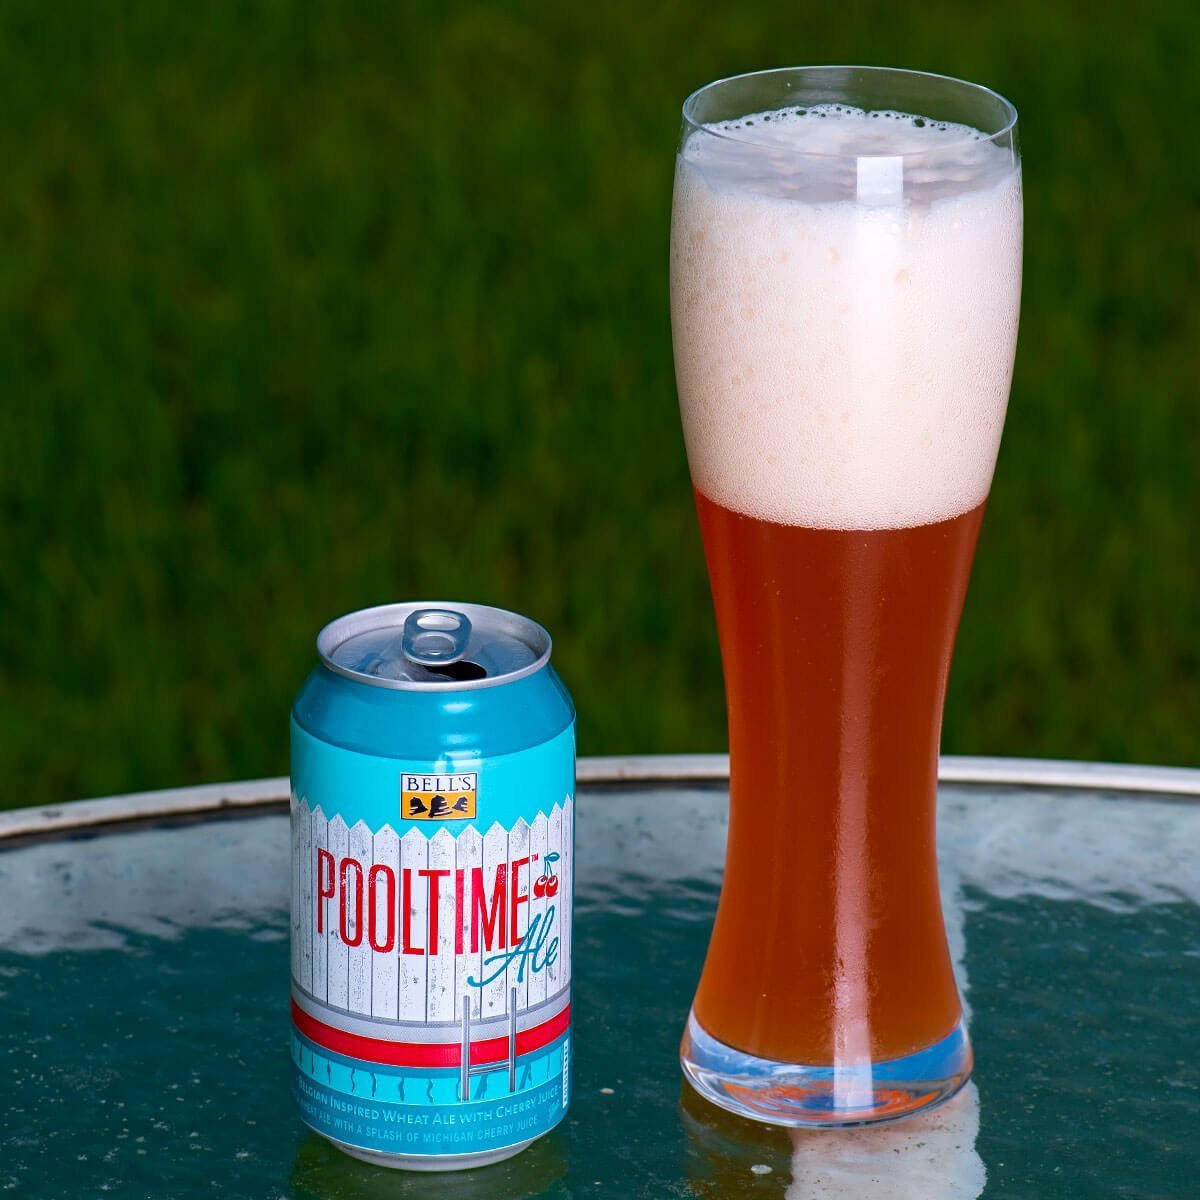 Pooltime Ale is a Belgian-style Witbier by Bell's Brewery, Inc. whose spicy notes are balanced by tart cherries for a refreshing brew.